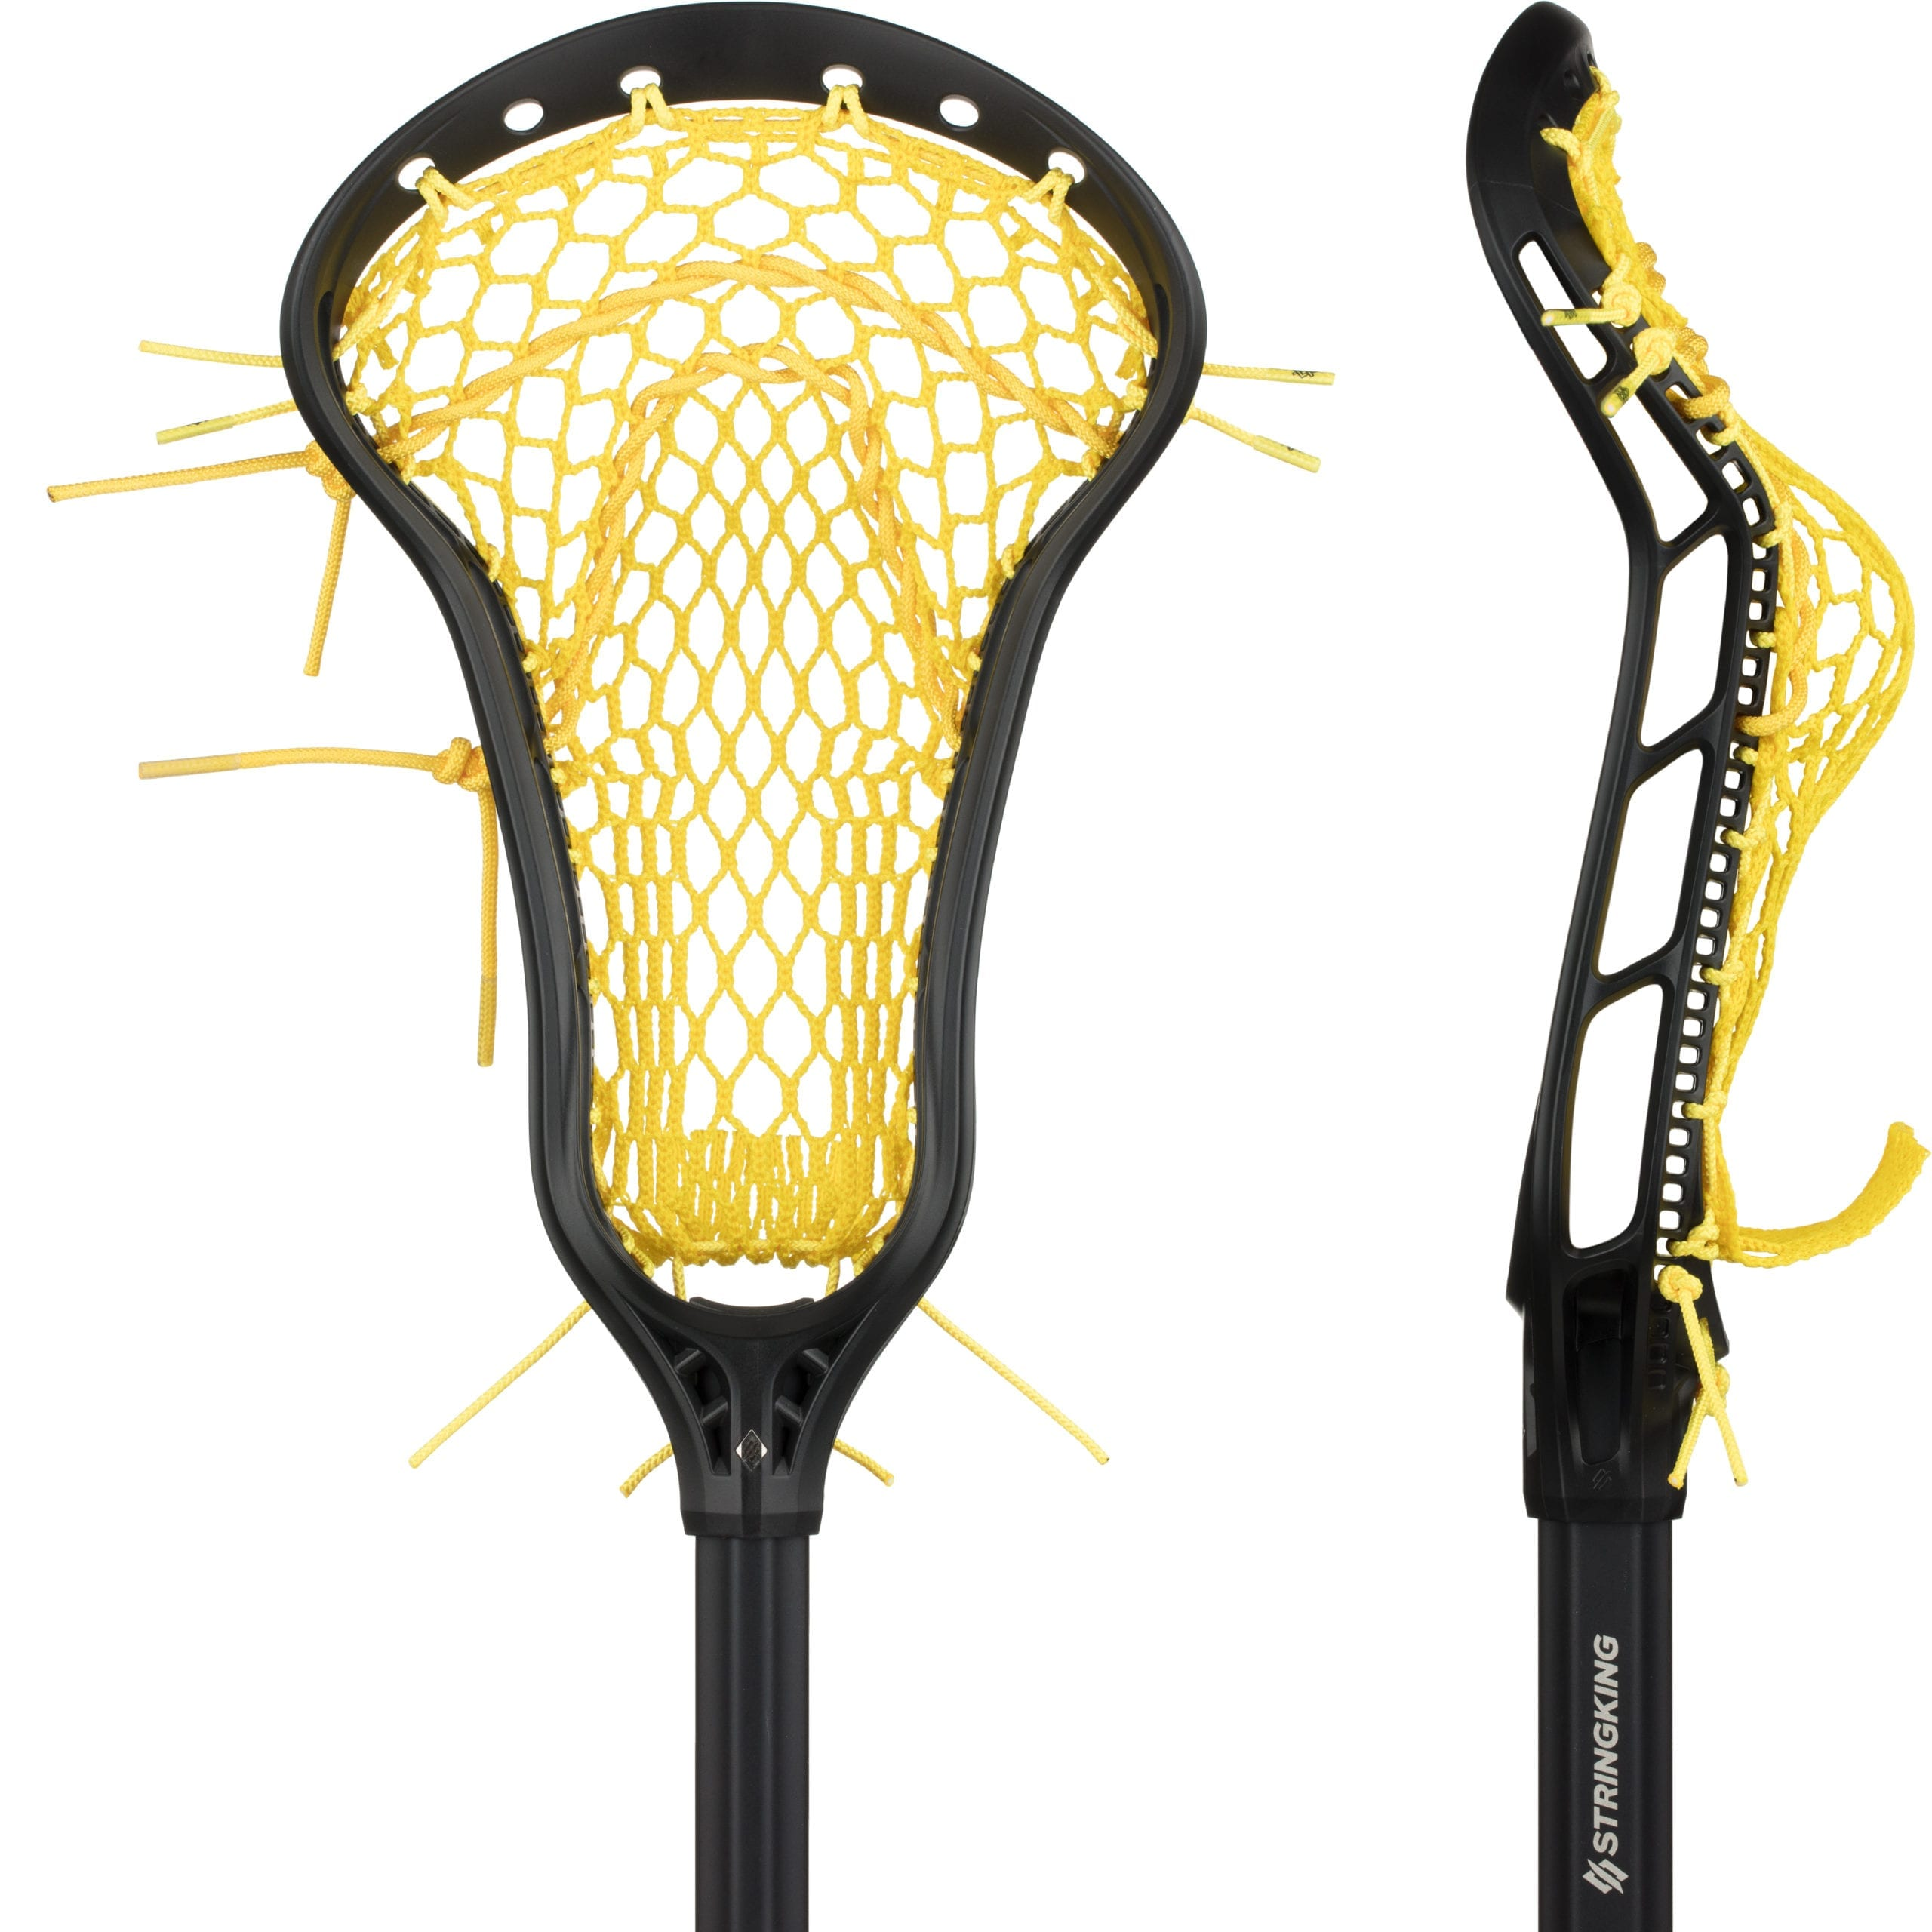 StringKing-Womens-Complete-2-Offense-Front-Side-Strung-YellowBlack-scaled-1.jpg